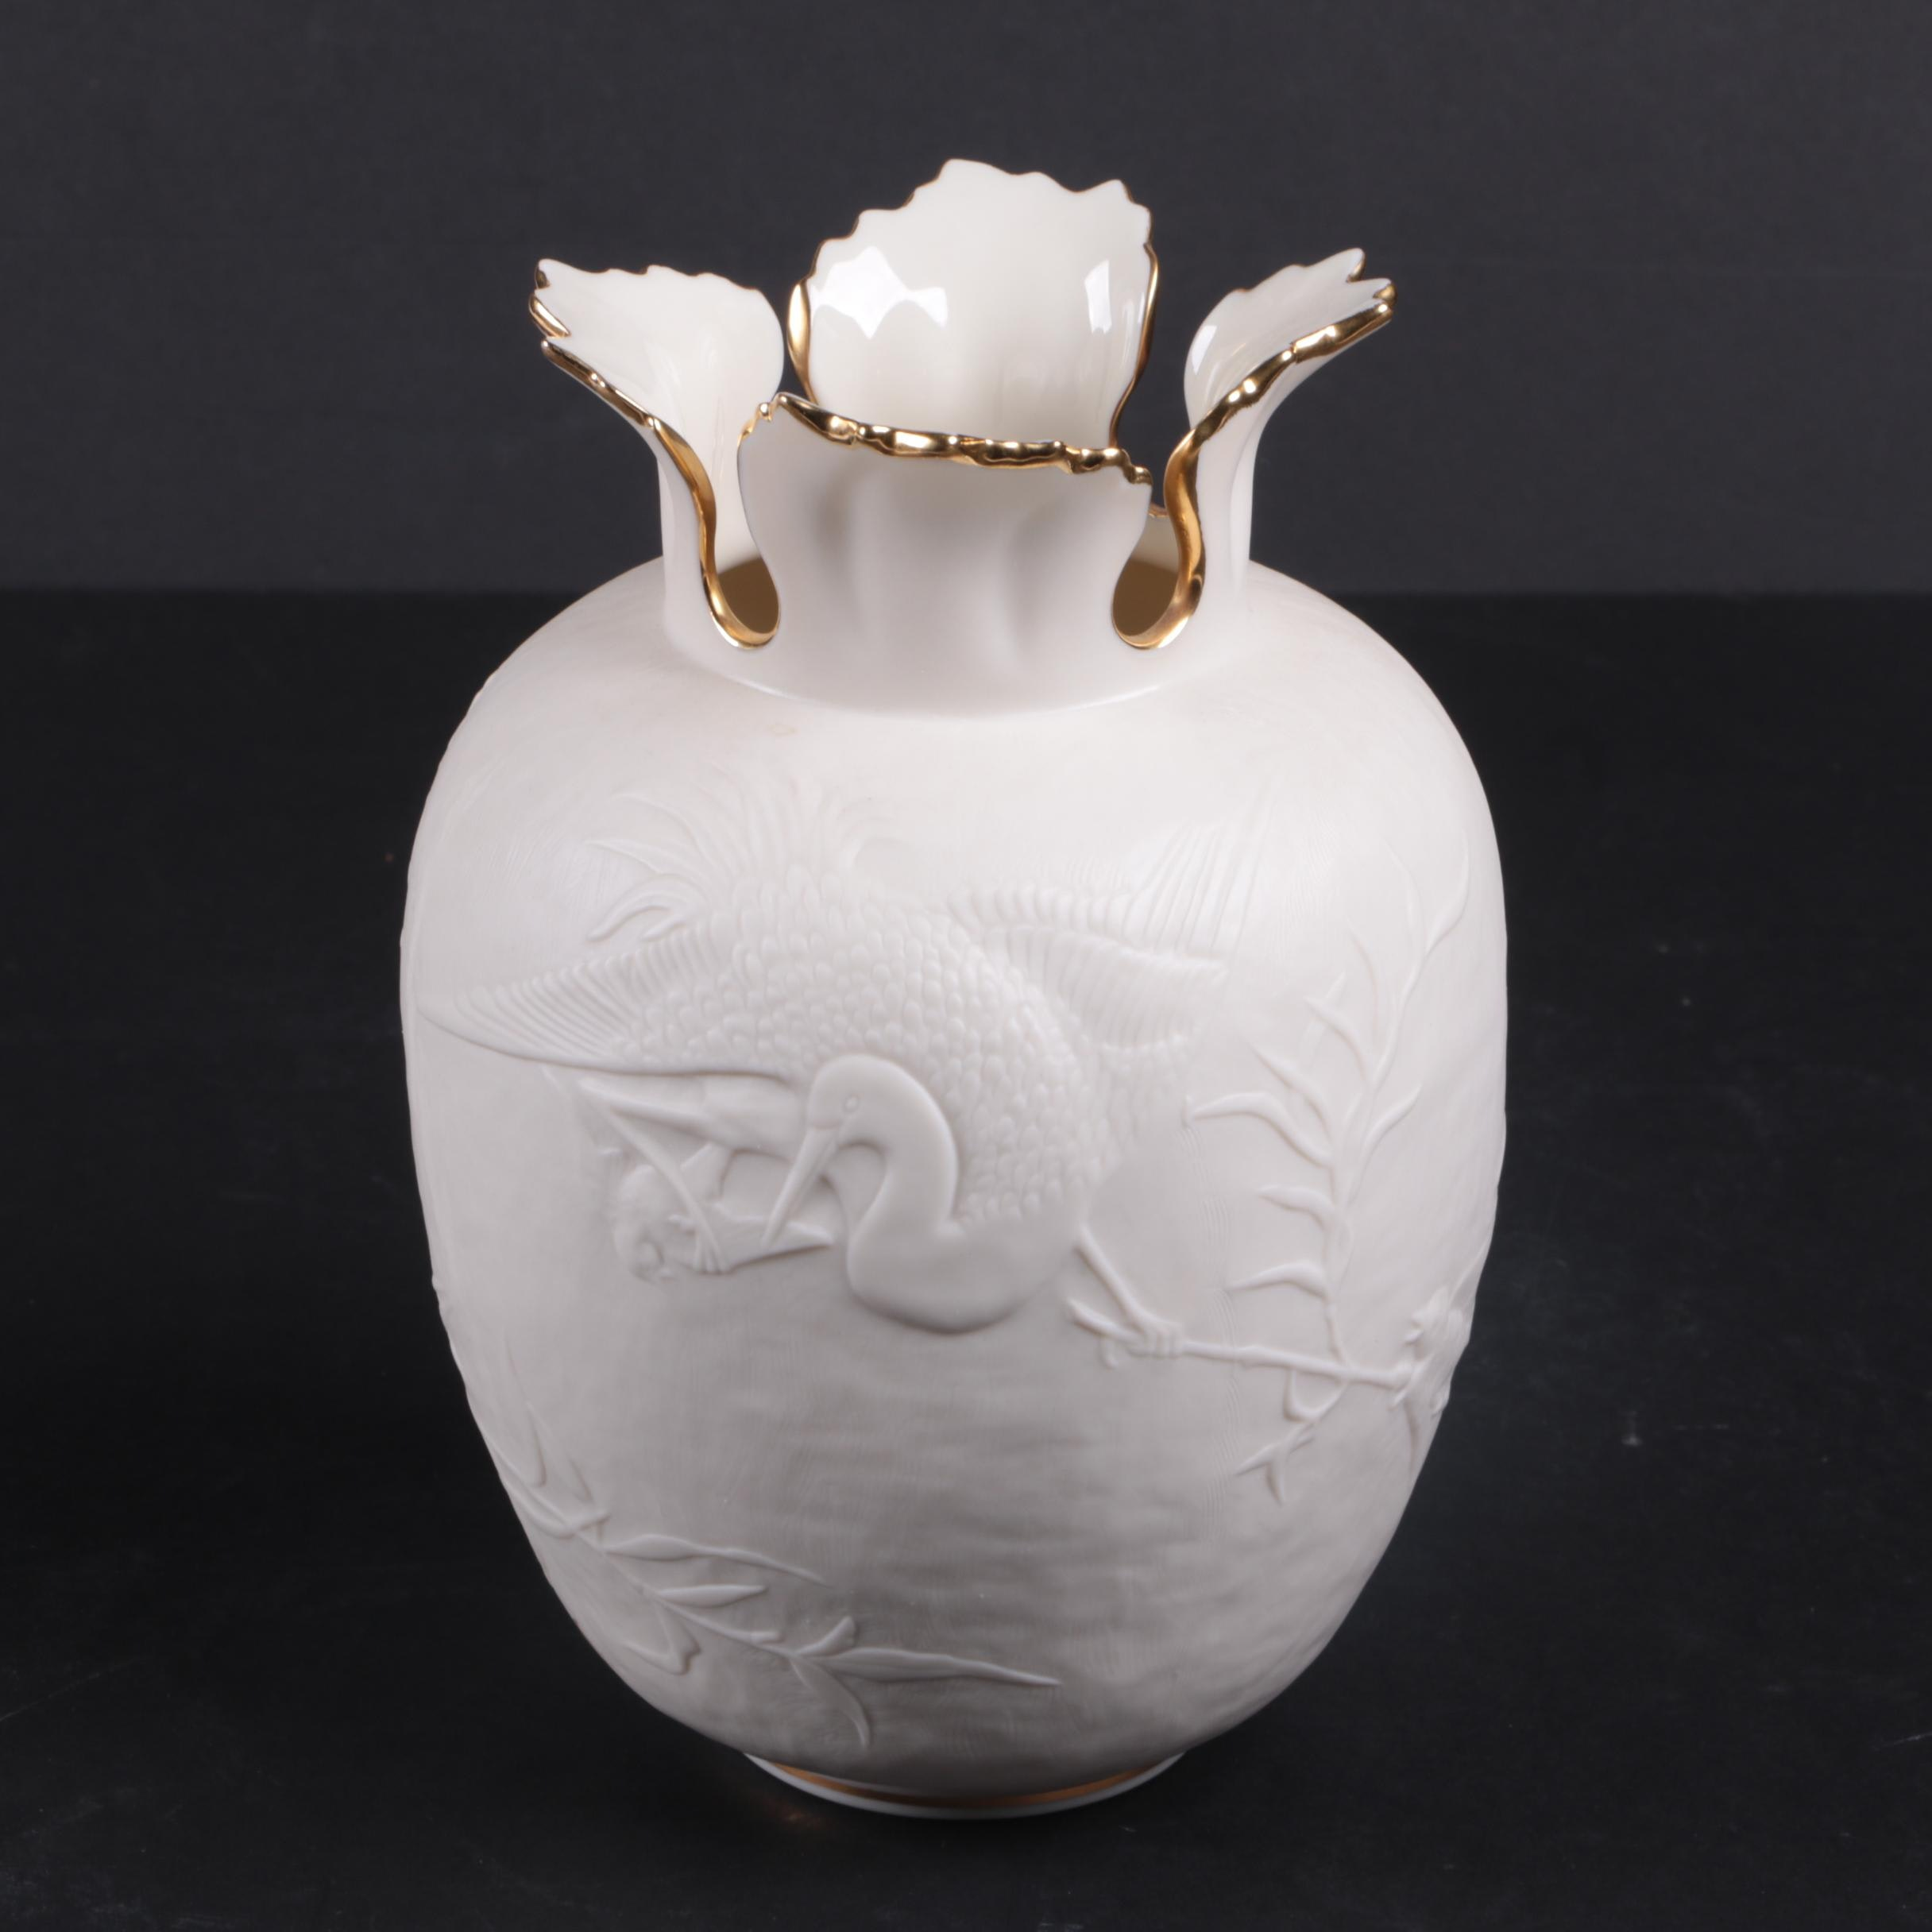 Lenox Heritage Collection Ceramic Vase After Kate Sears